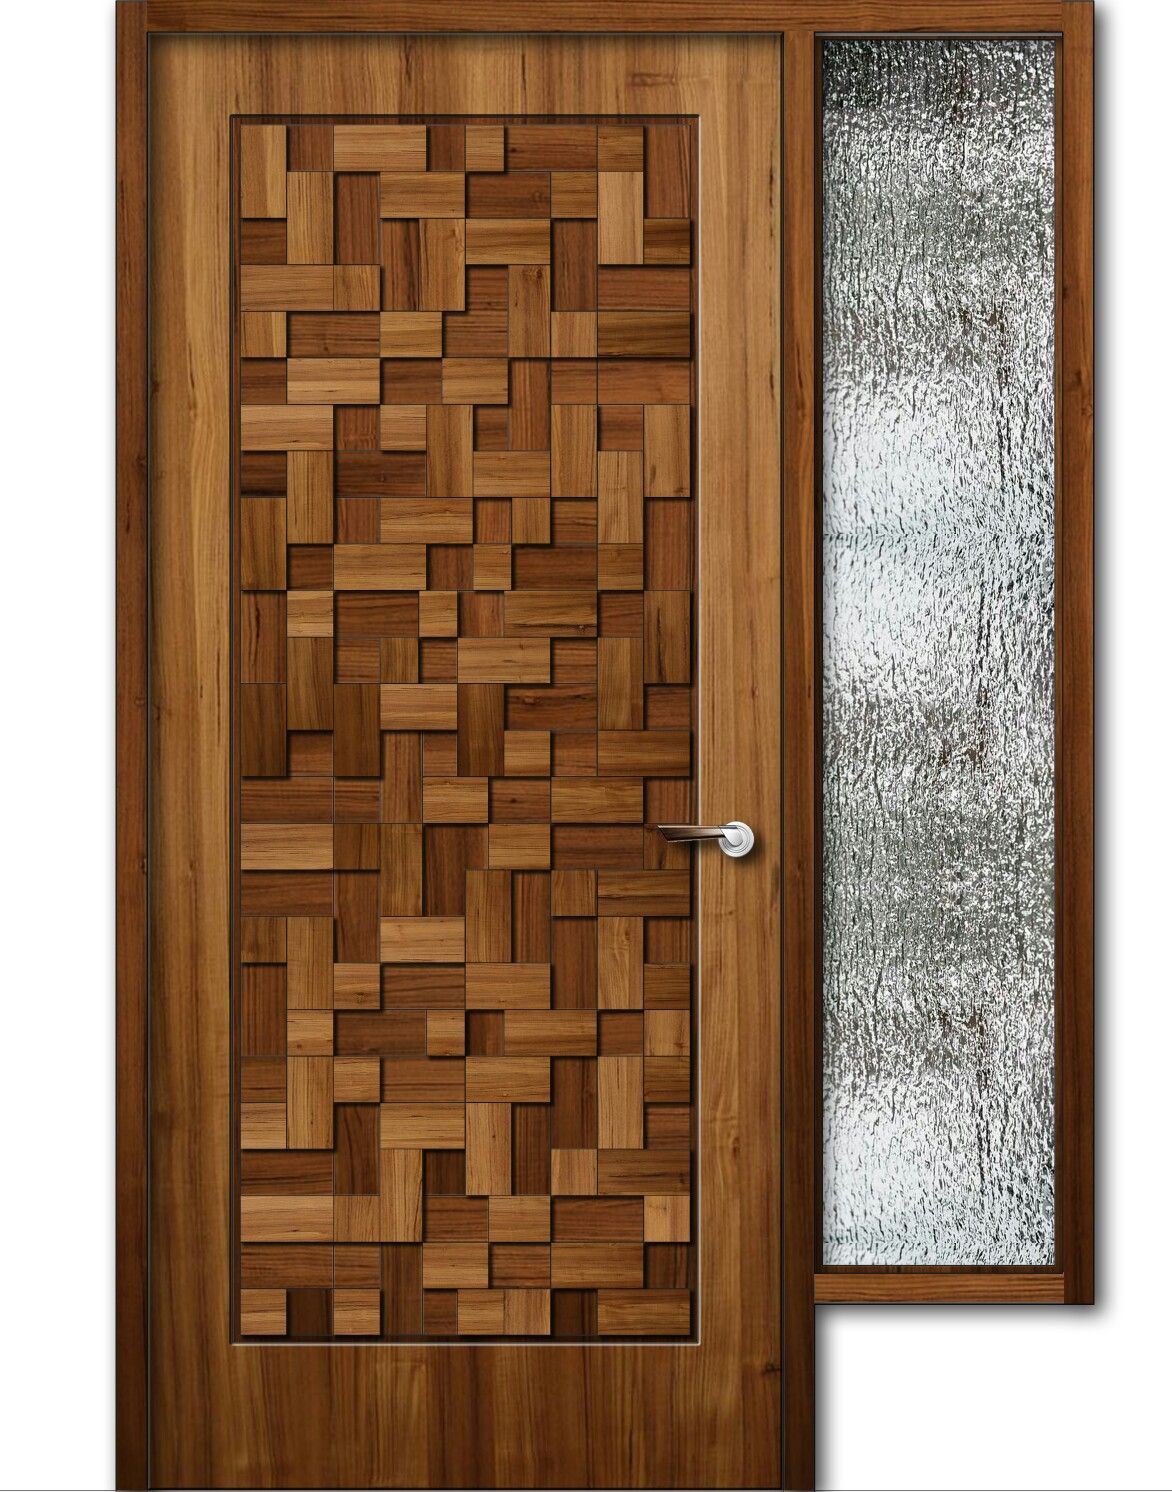 Teak wood finish wooden door with window 8feet height for Entrance door designs photos